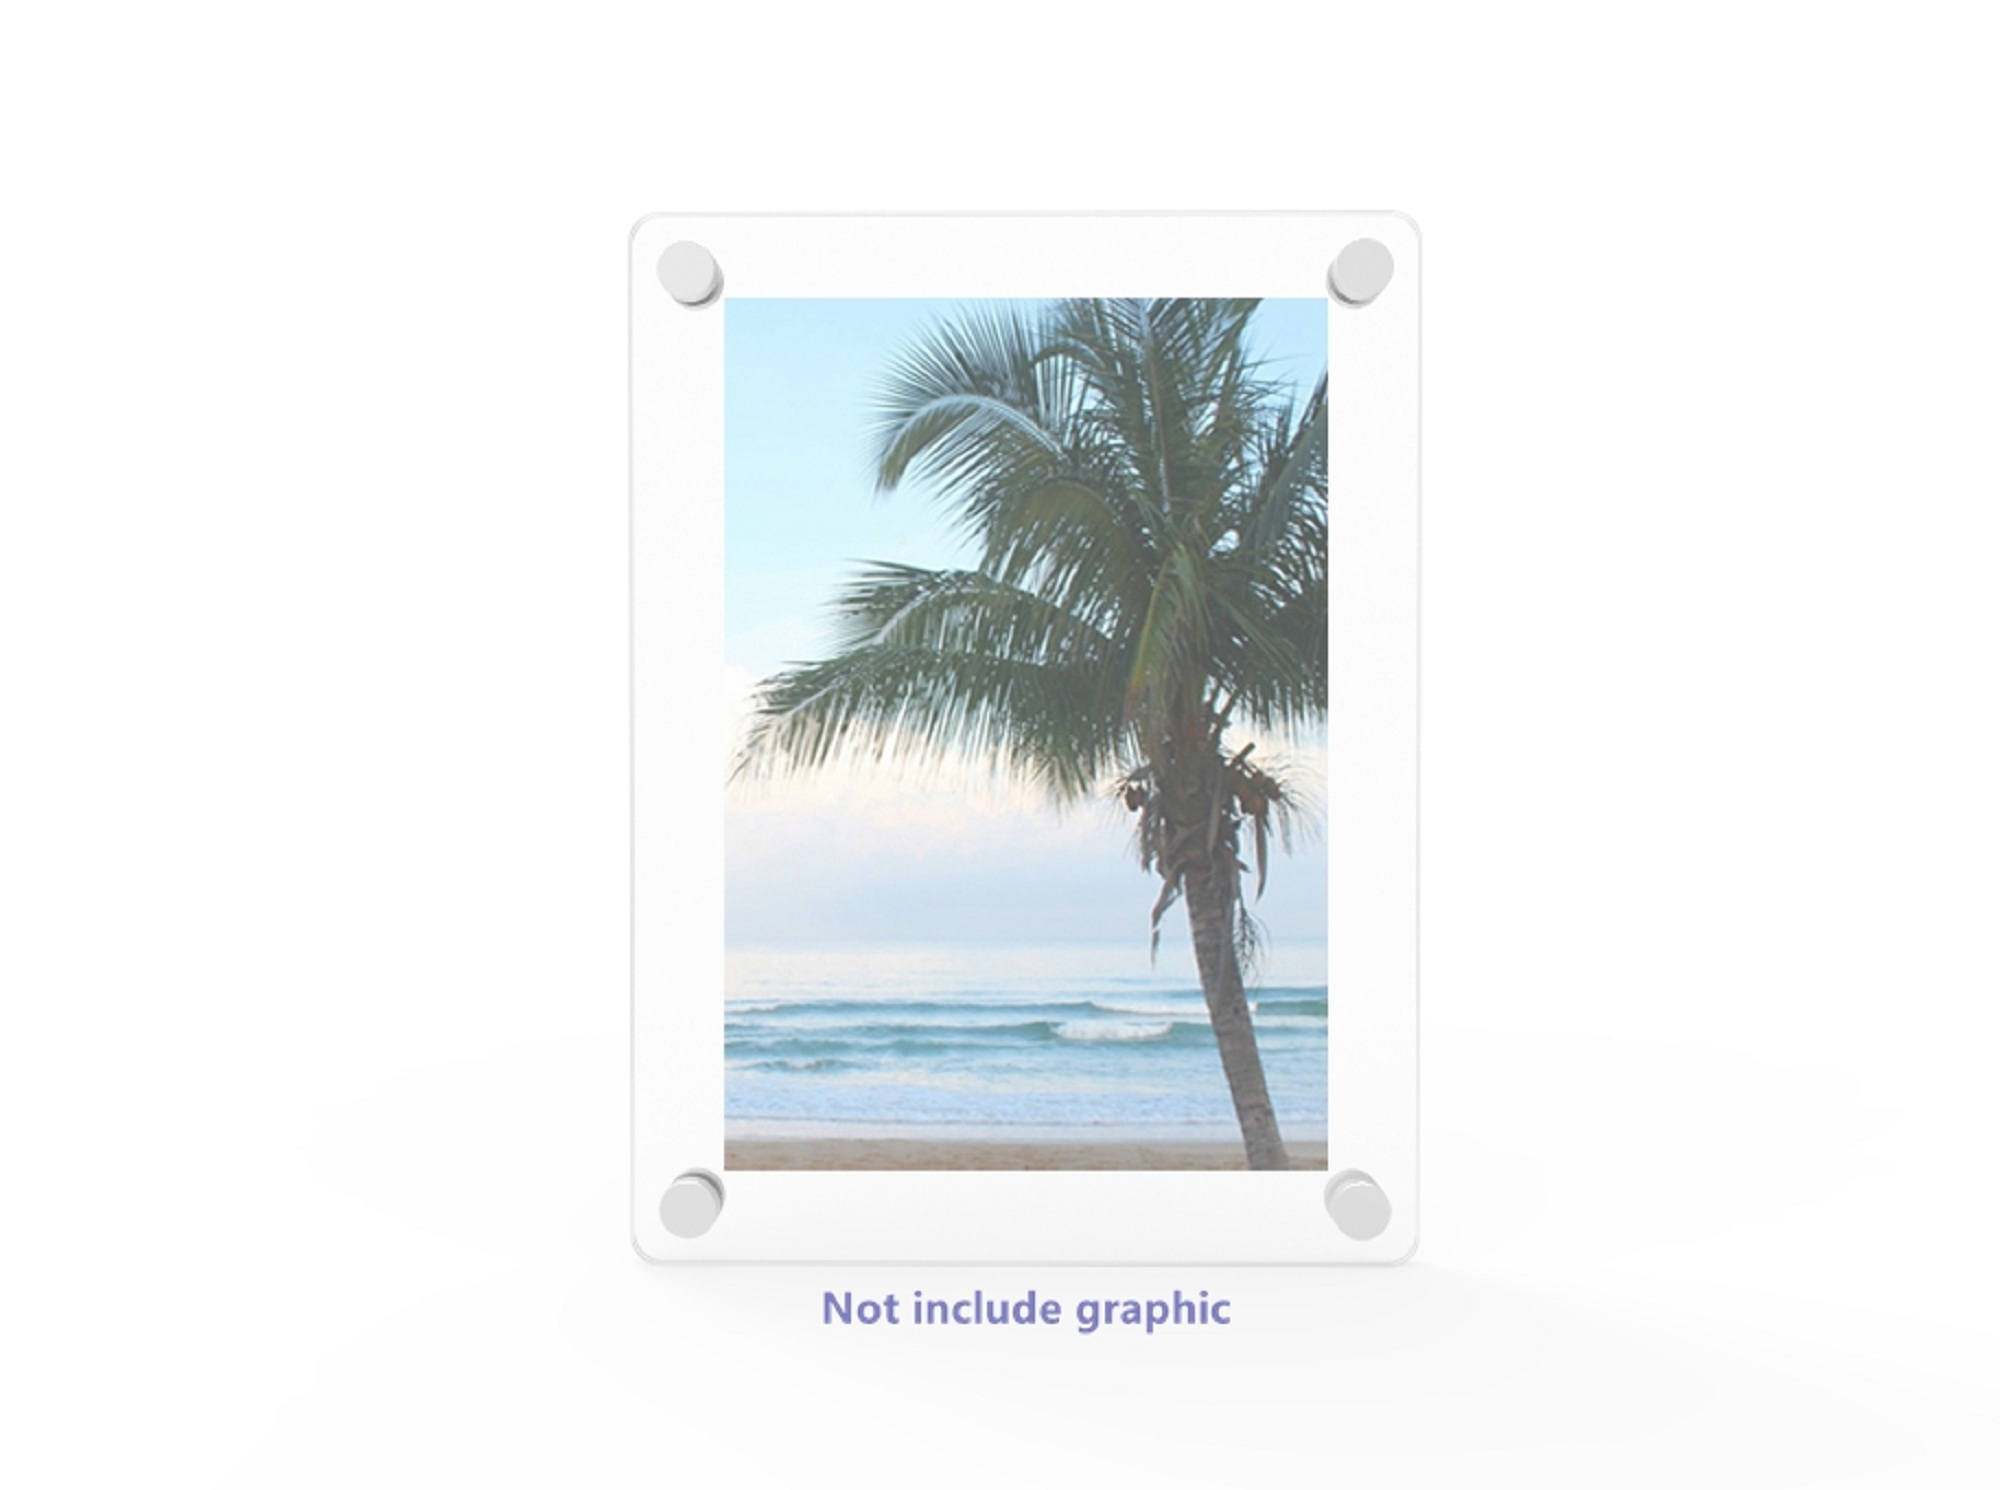 WALL MOUNT PICTURE Frame Acrylic Sign Holder Lucite Poster Display ...